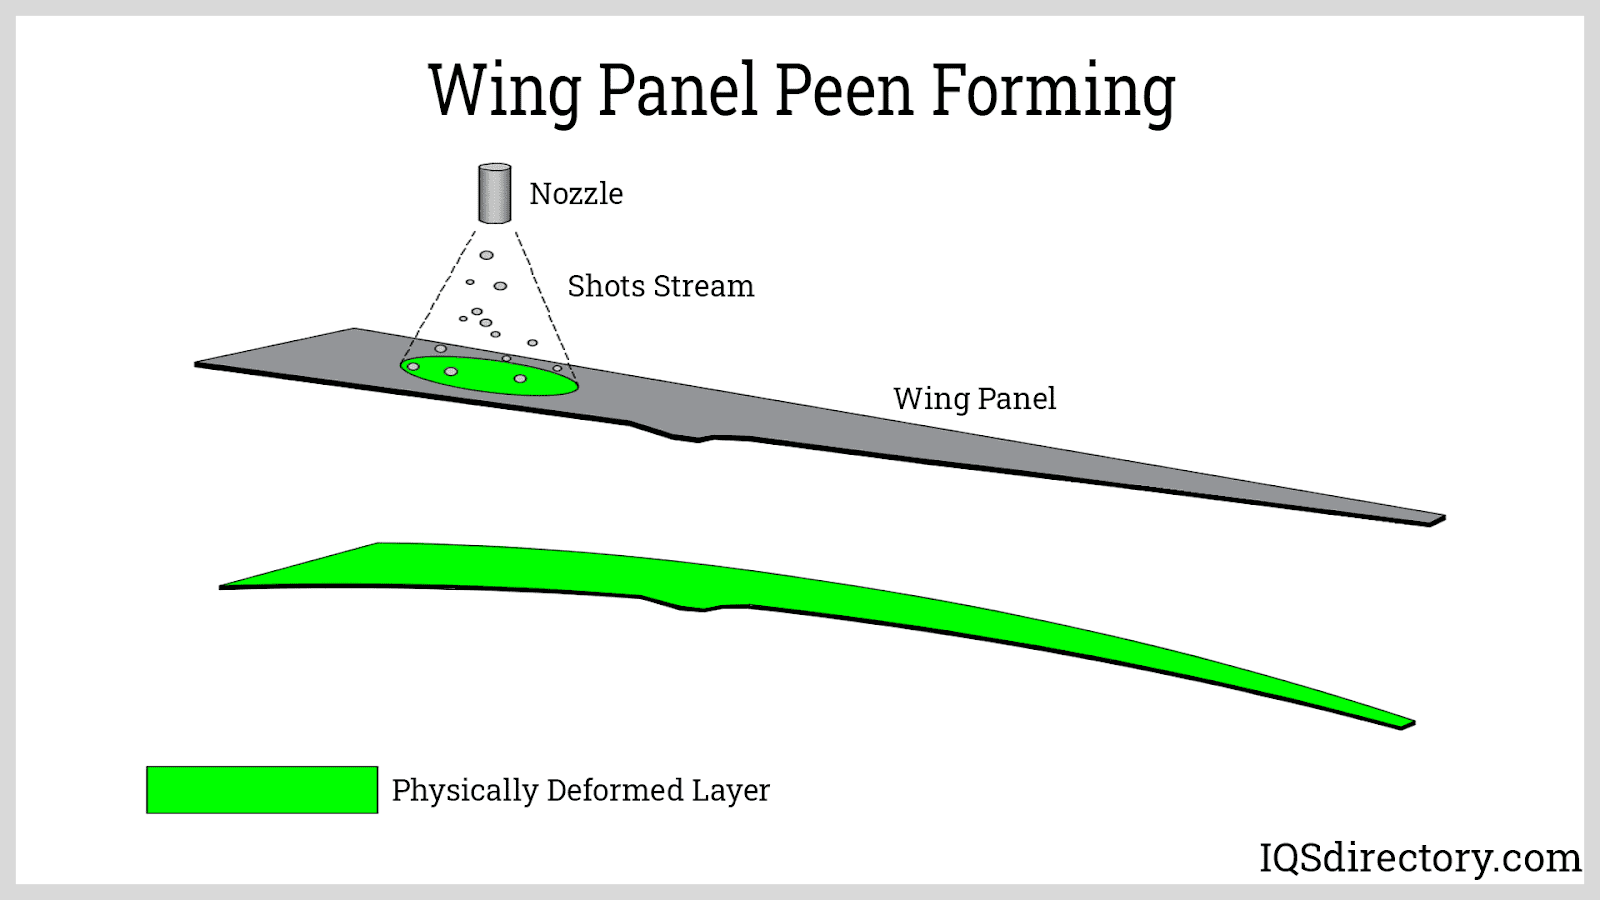 Wing Panel Peen Forming